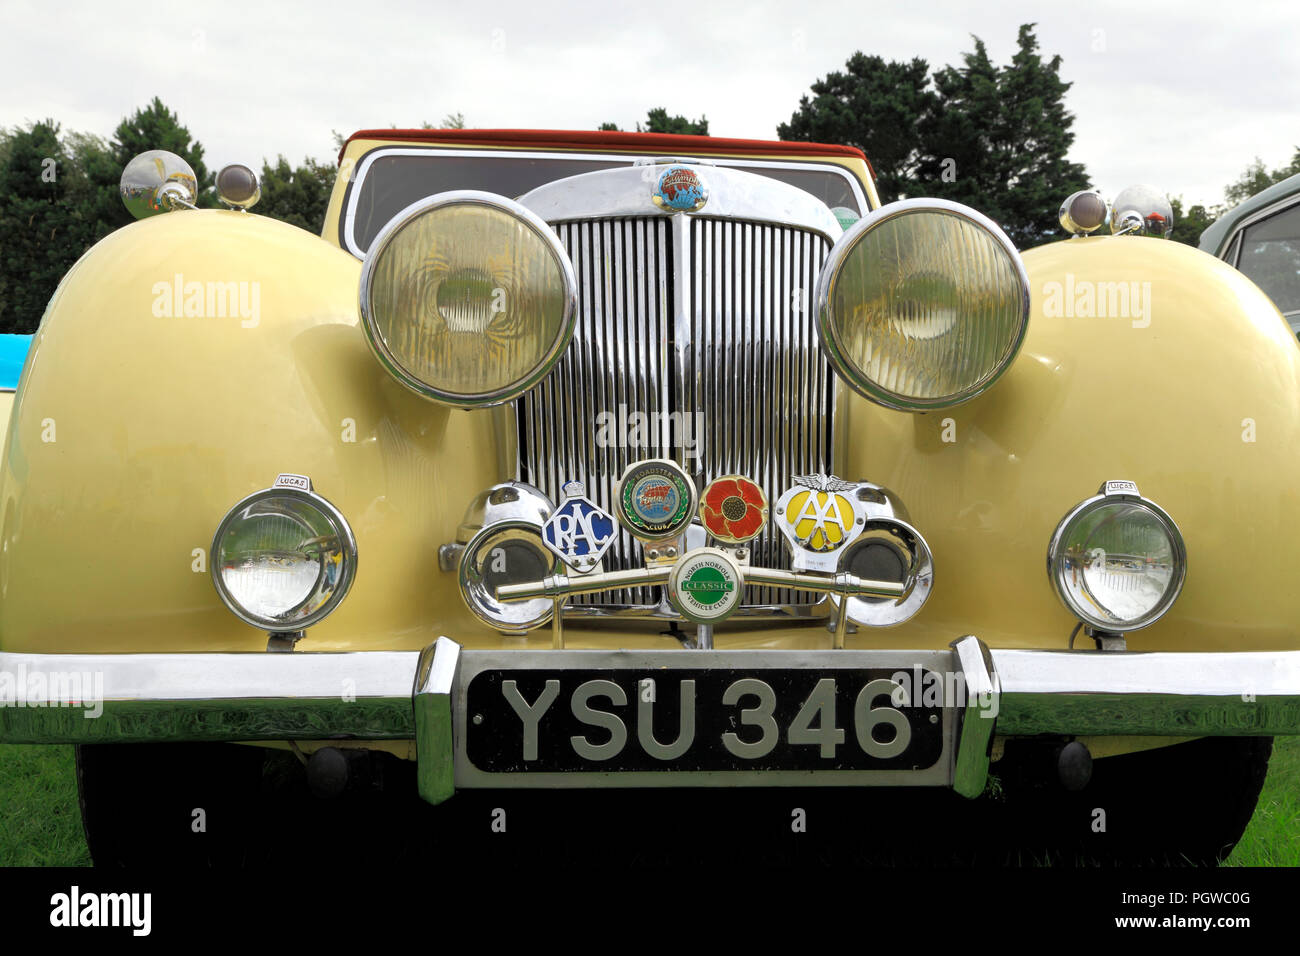 Triumph Roadster, 1949, vintage car, automobile, badges, AA, RAC, Roadster Club, North Norfolk Classic Vehicle Club, detail - Stock Image